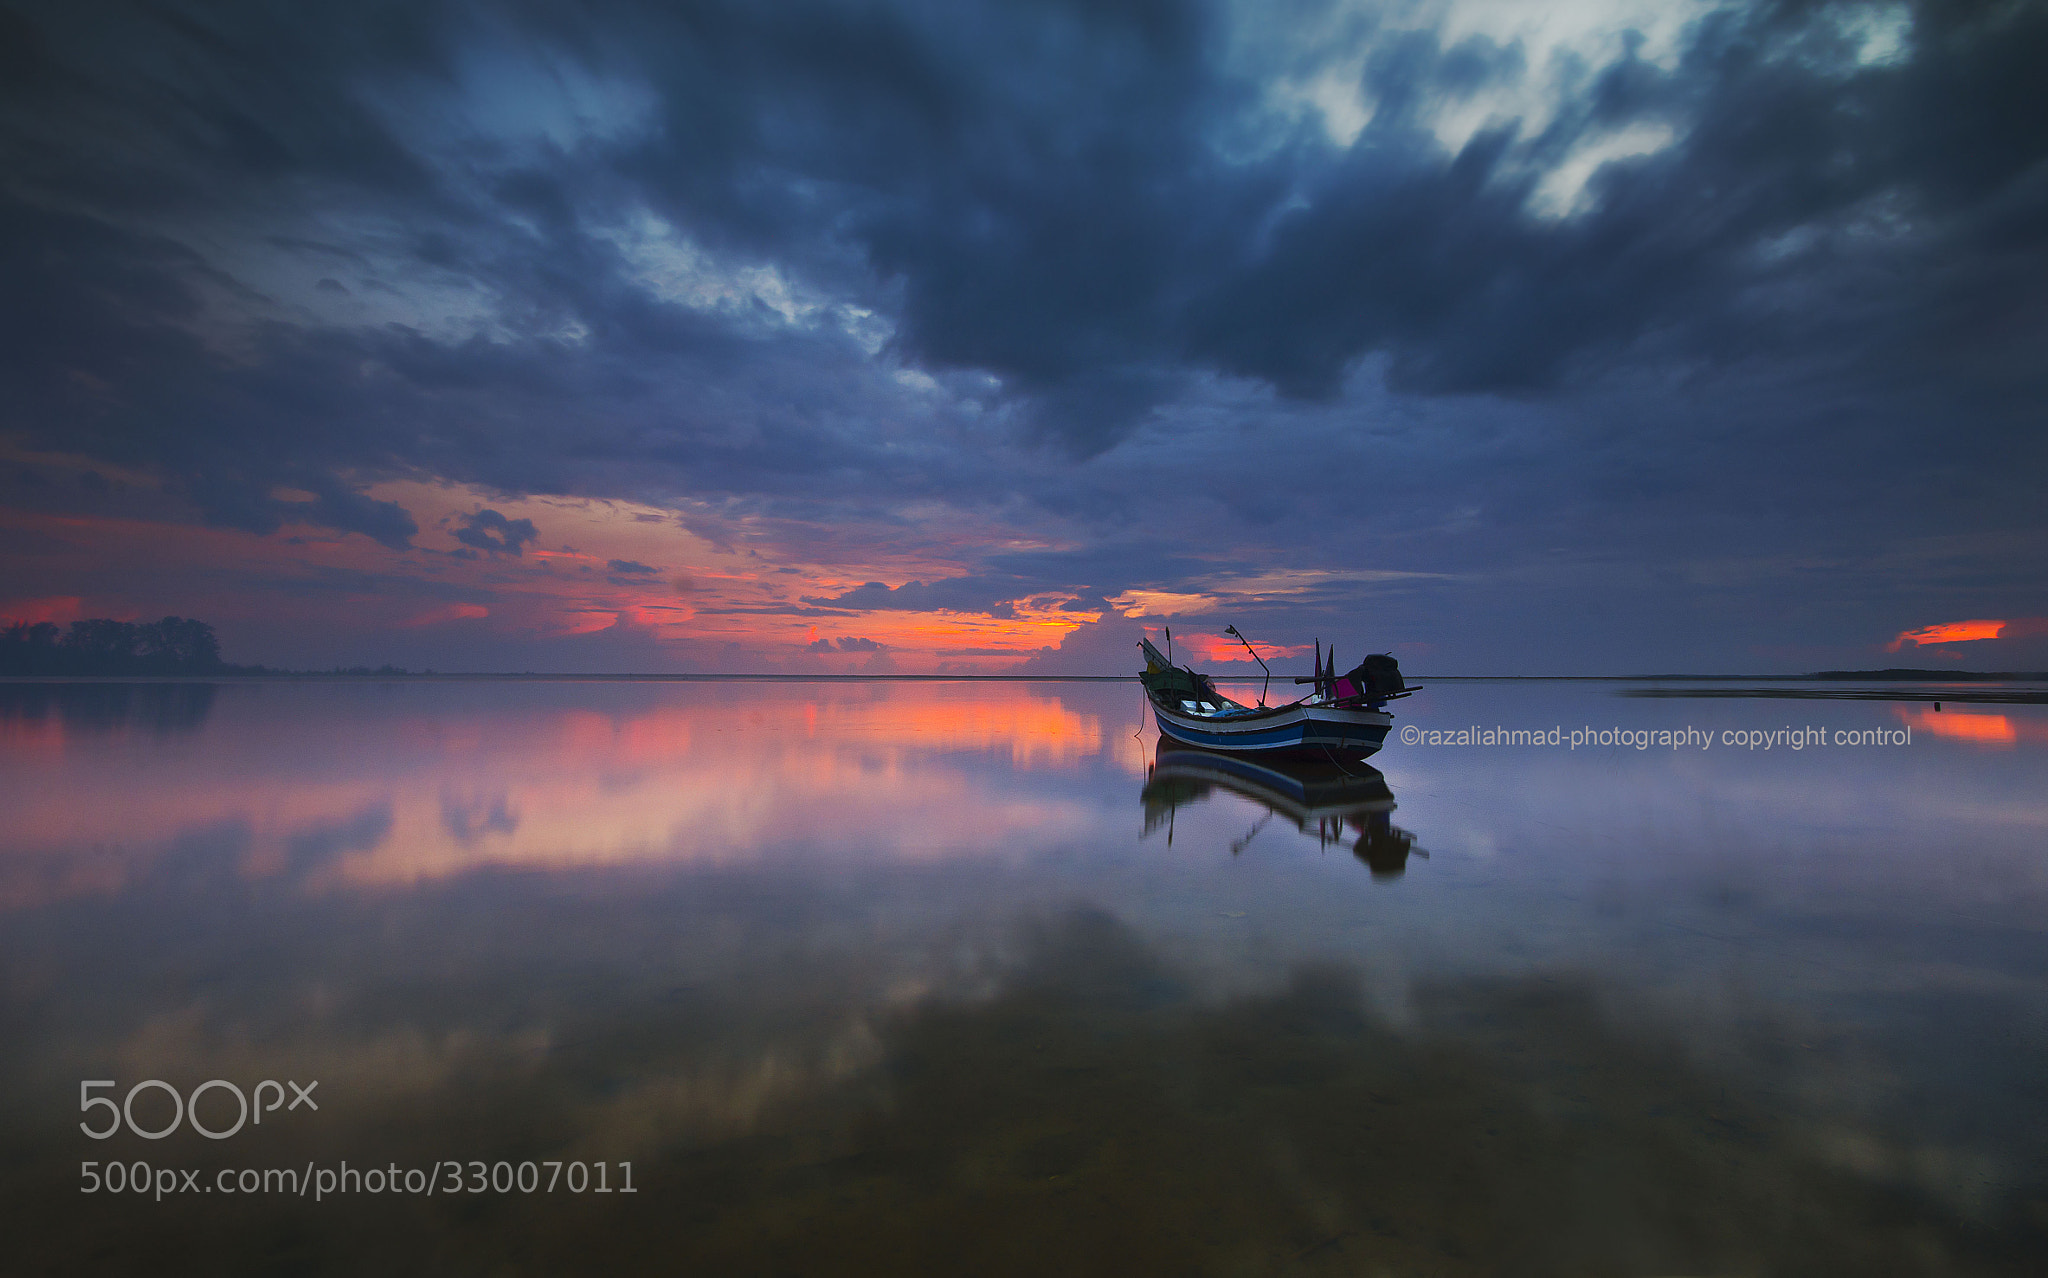 Photograph soul searching by Razali Ahmad on 500px